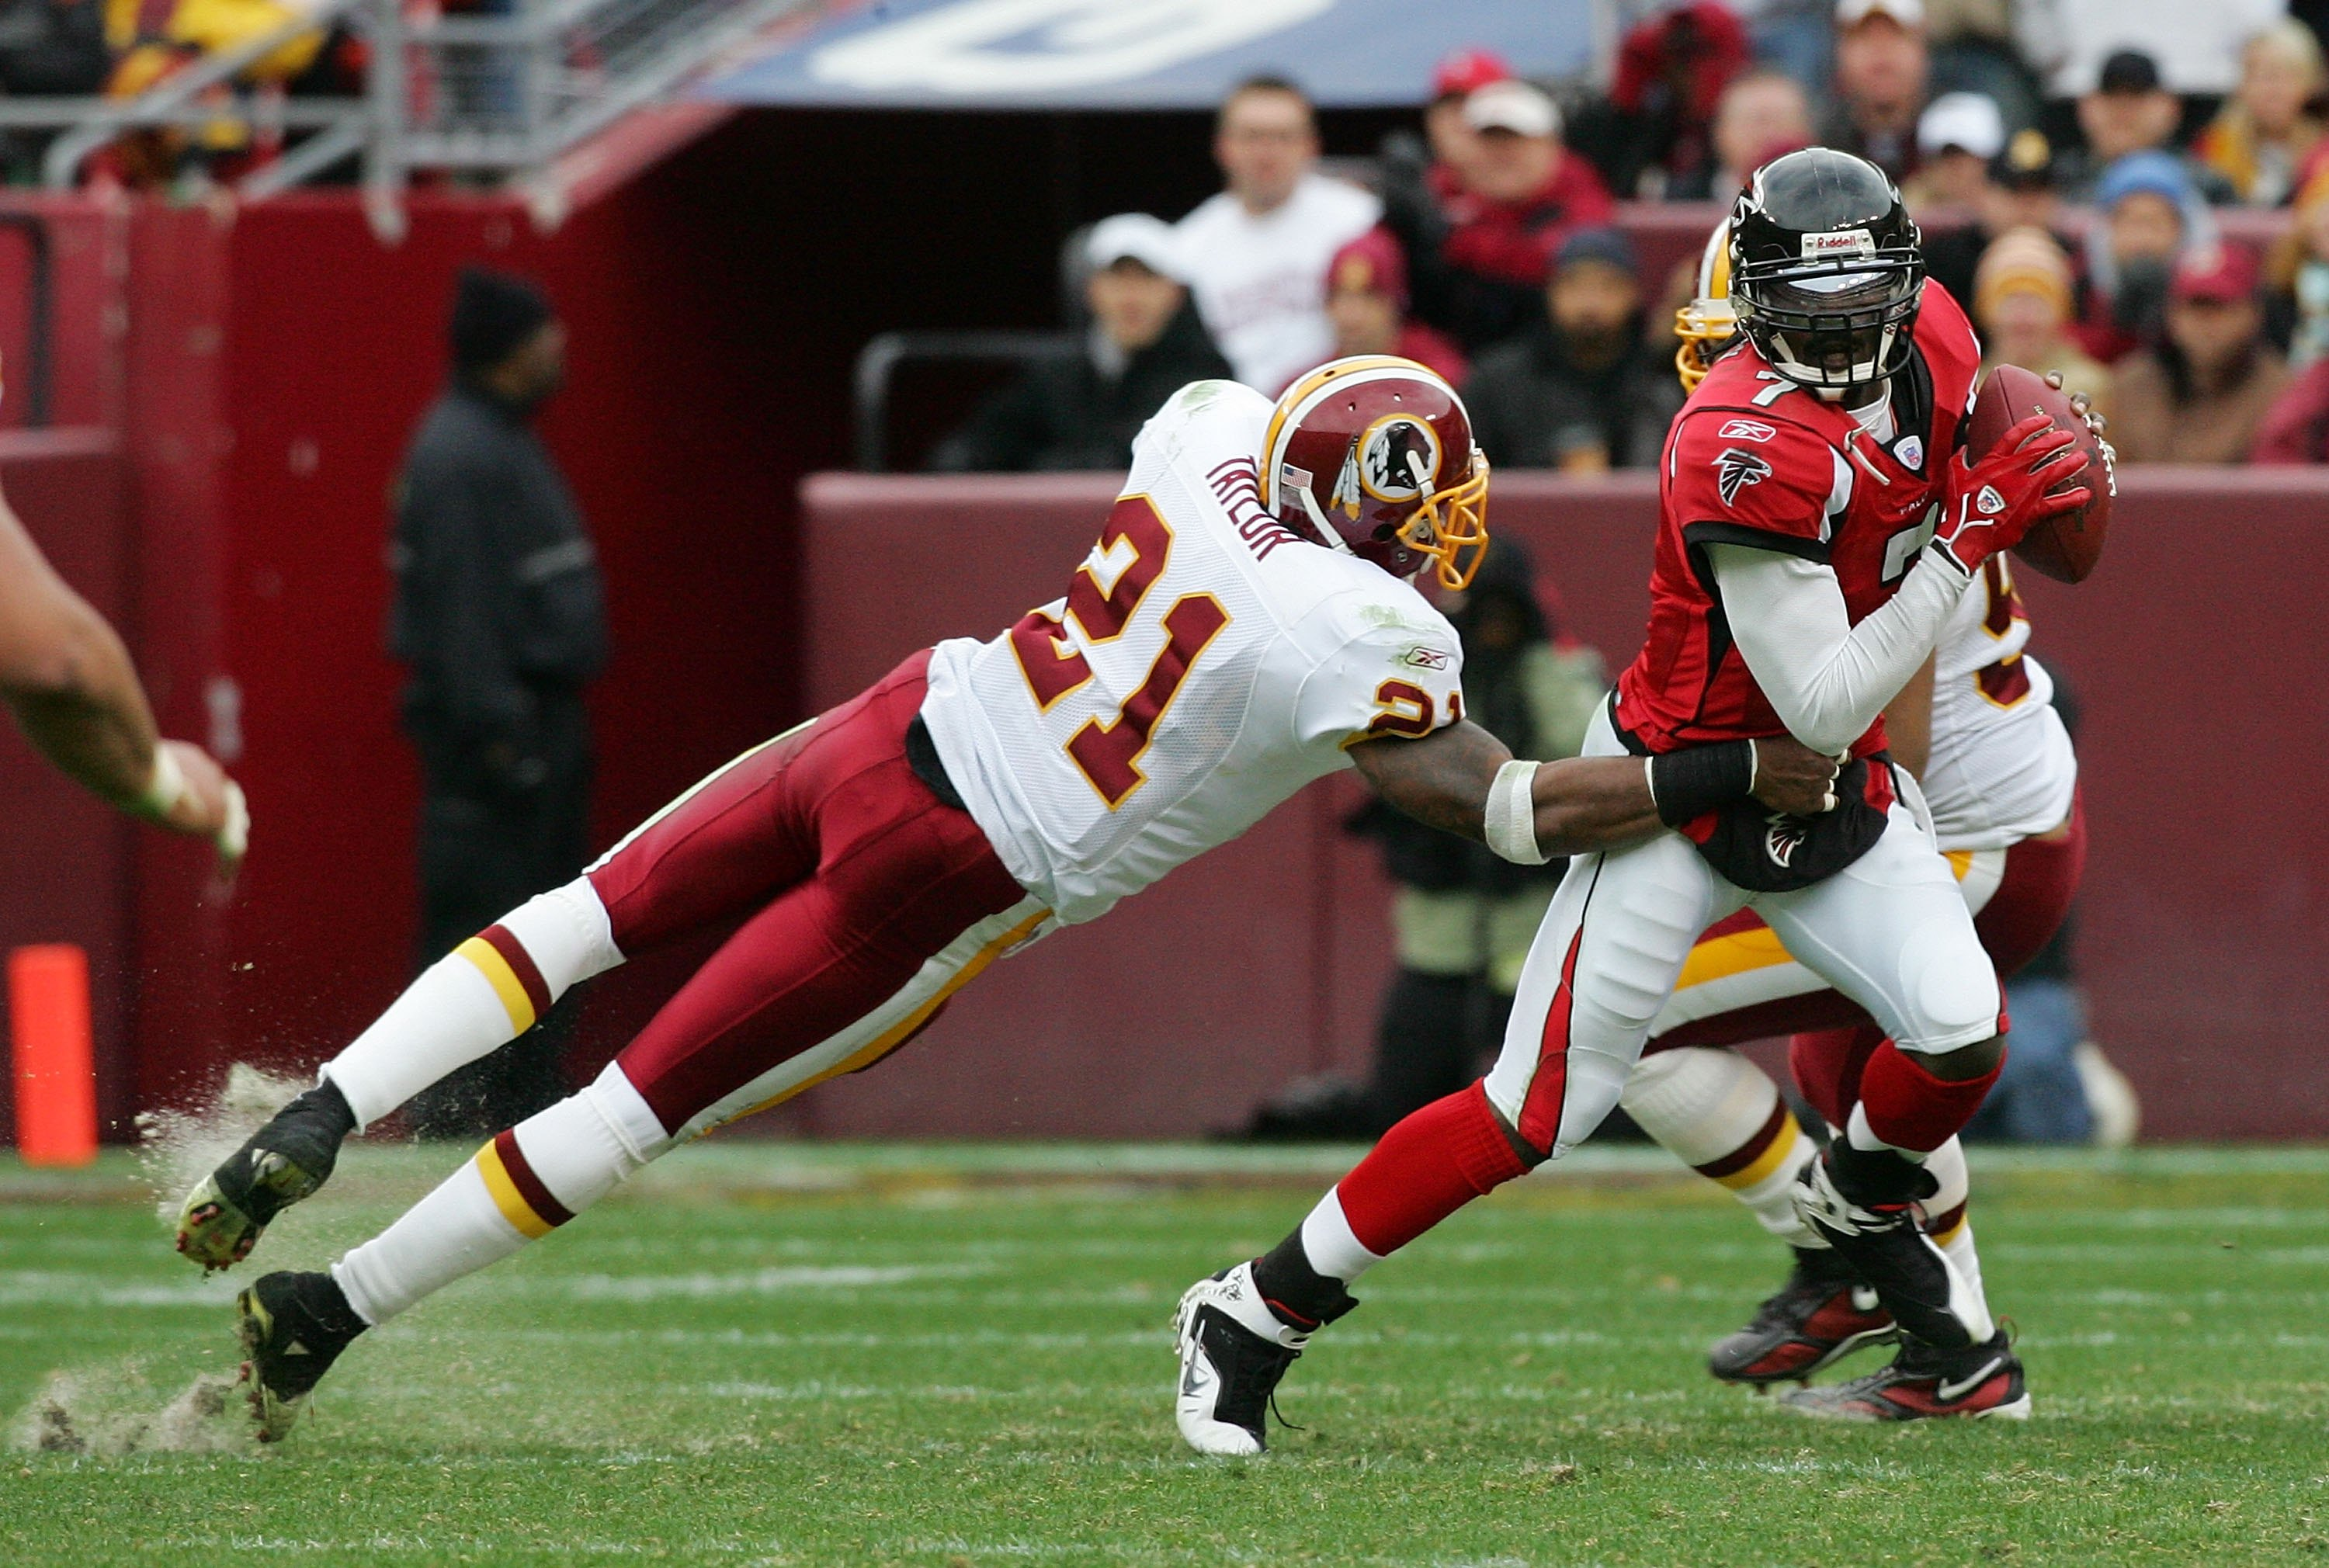 LANDOVER, MD - DECEMBER 03:   Michael Vick #7 of the Atlanta Falcons avoids a tackle from Sean Taylor #21 of the Washington Redskins December 3, 2006 at FedEx Field in Landover, Maryland.The Falcons defeated the Redskins, 24-14.  (Photo by Jim McIsaac/Get